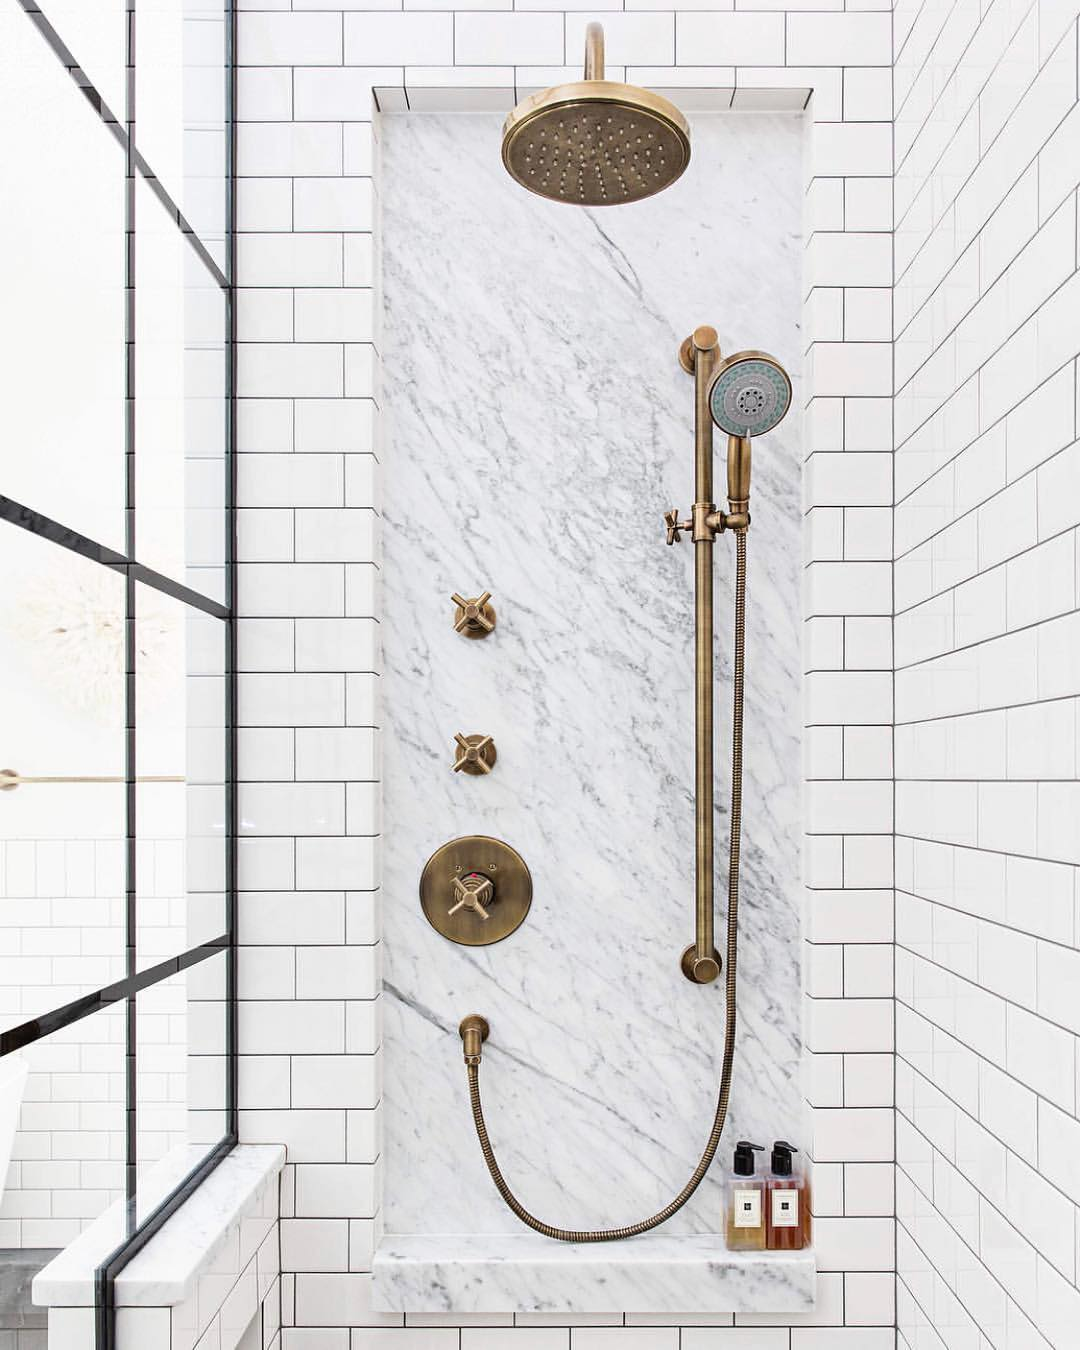 Vintage-style Aged Brass Shower Faucets, Hardware, and Systems